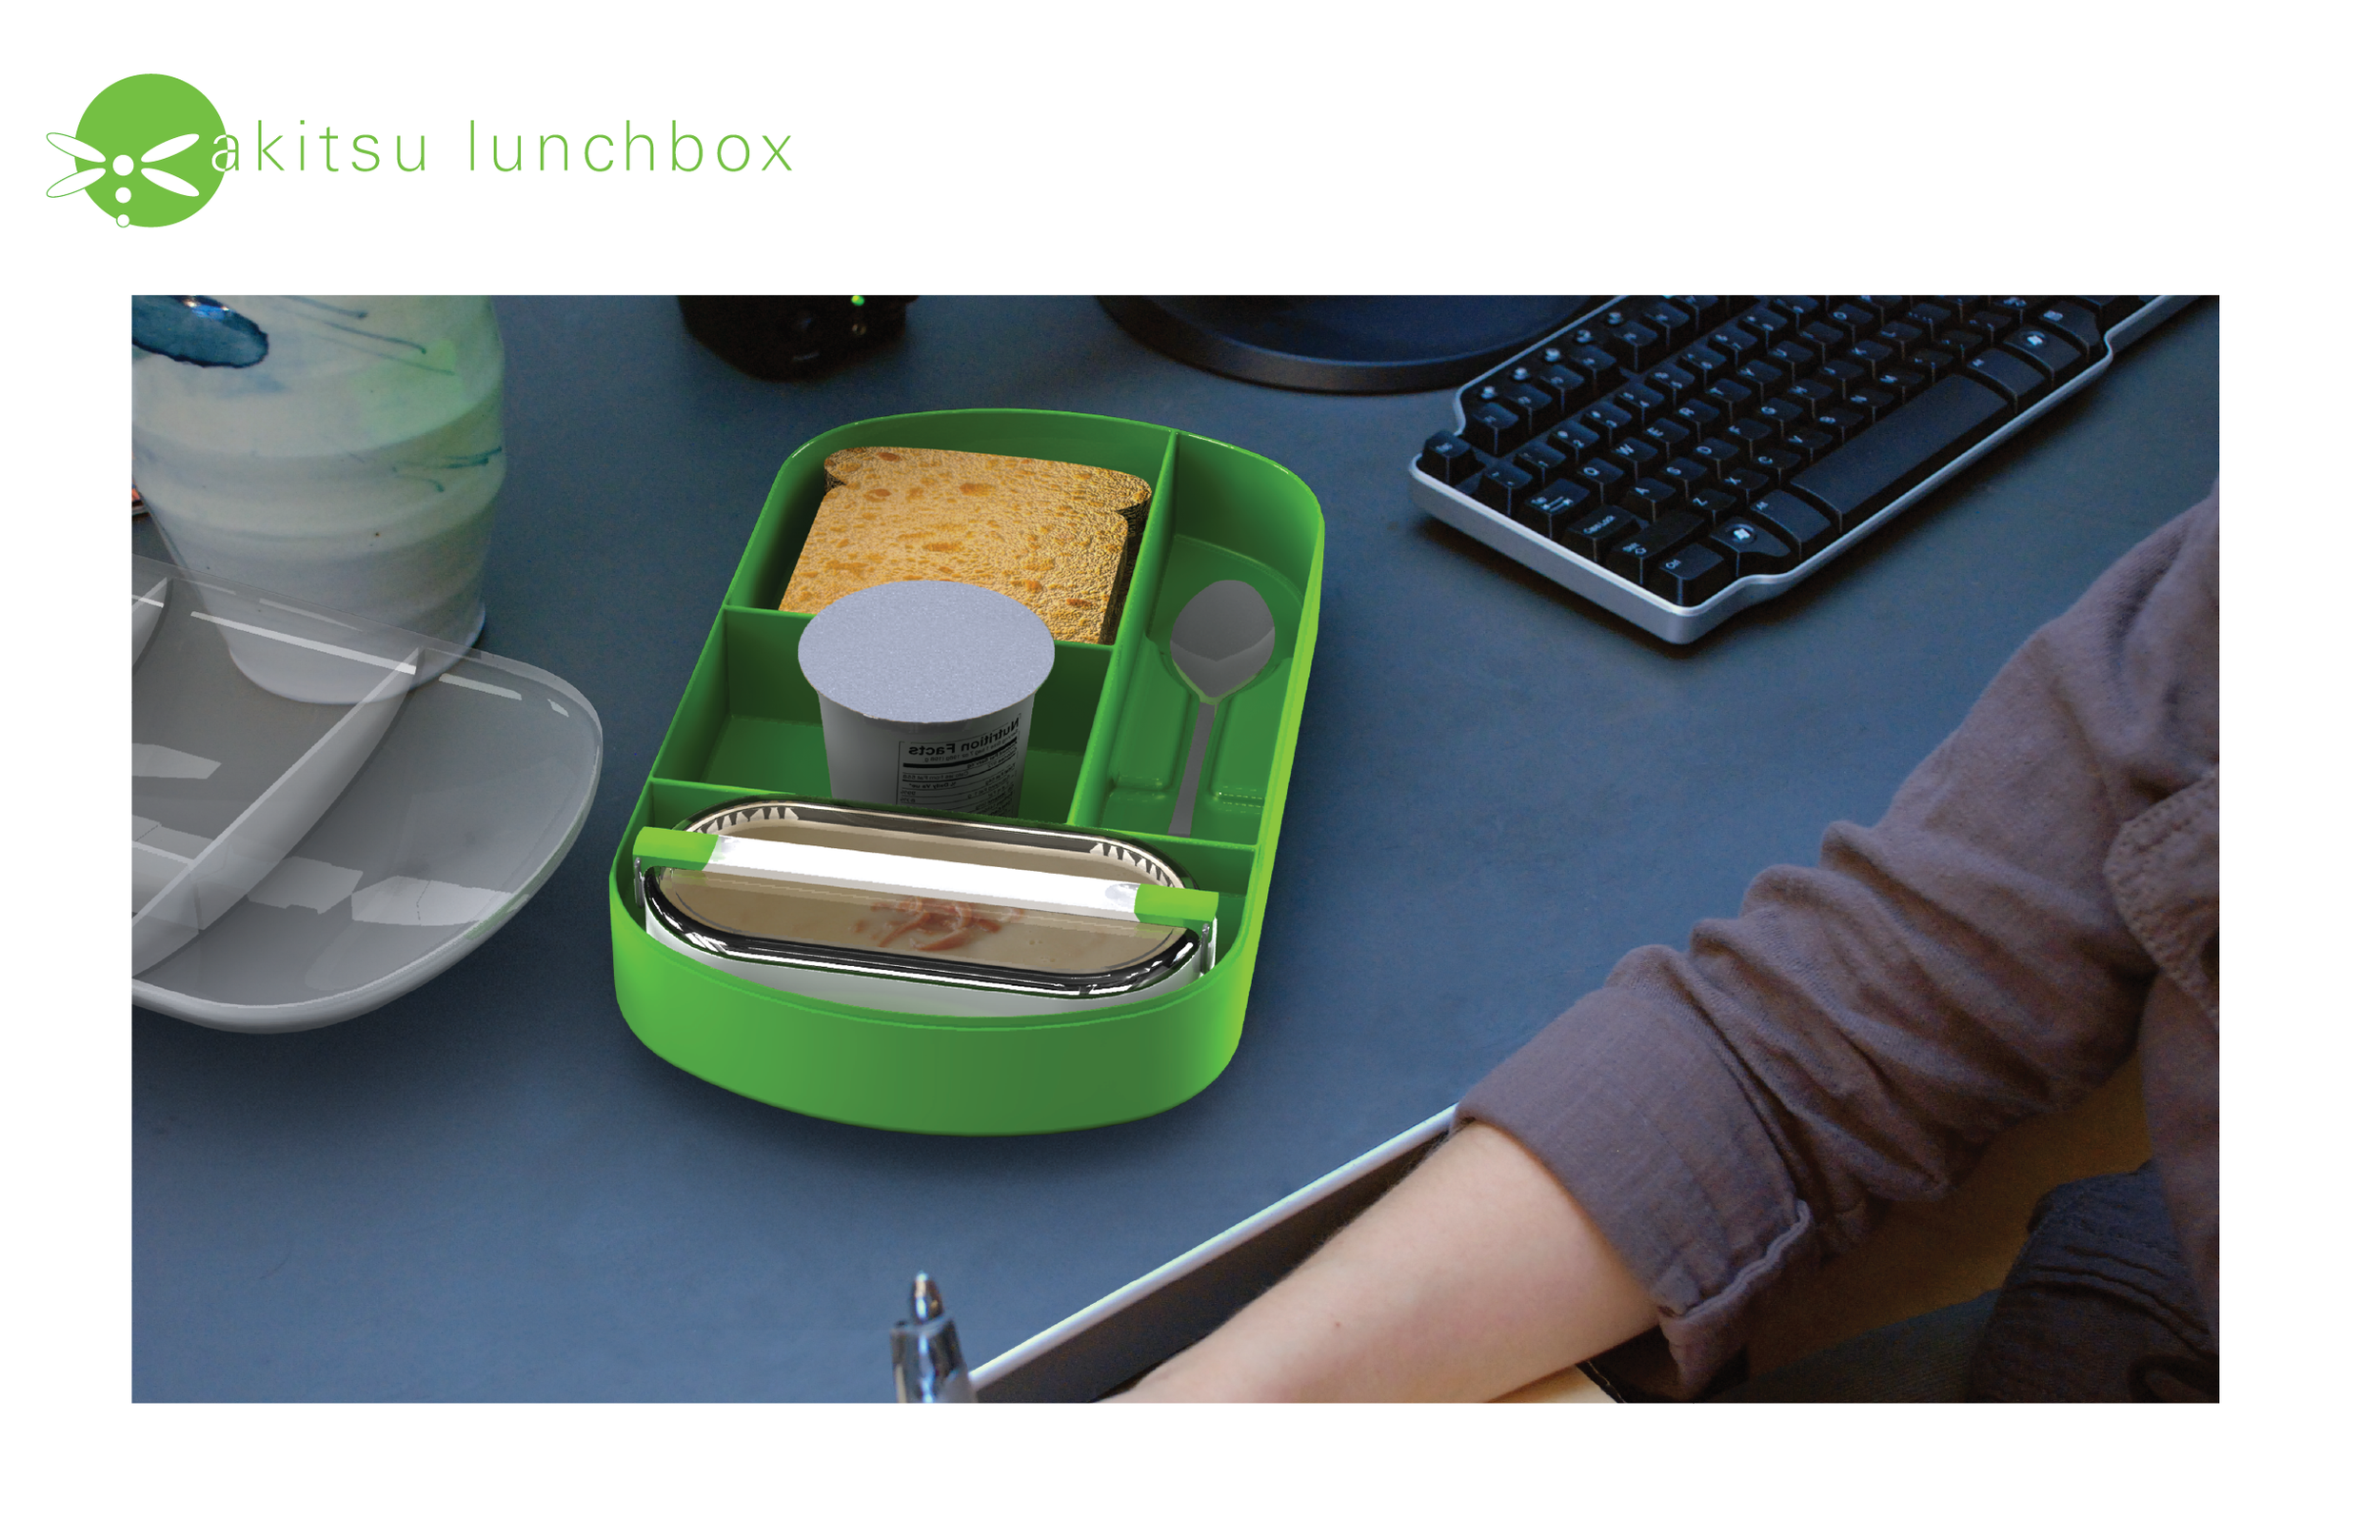 lunchbox-08.png